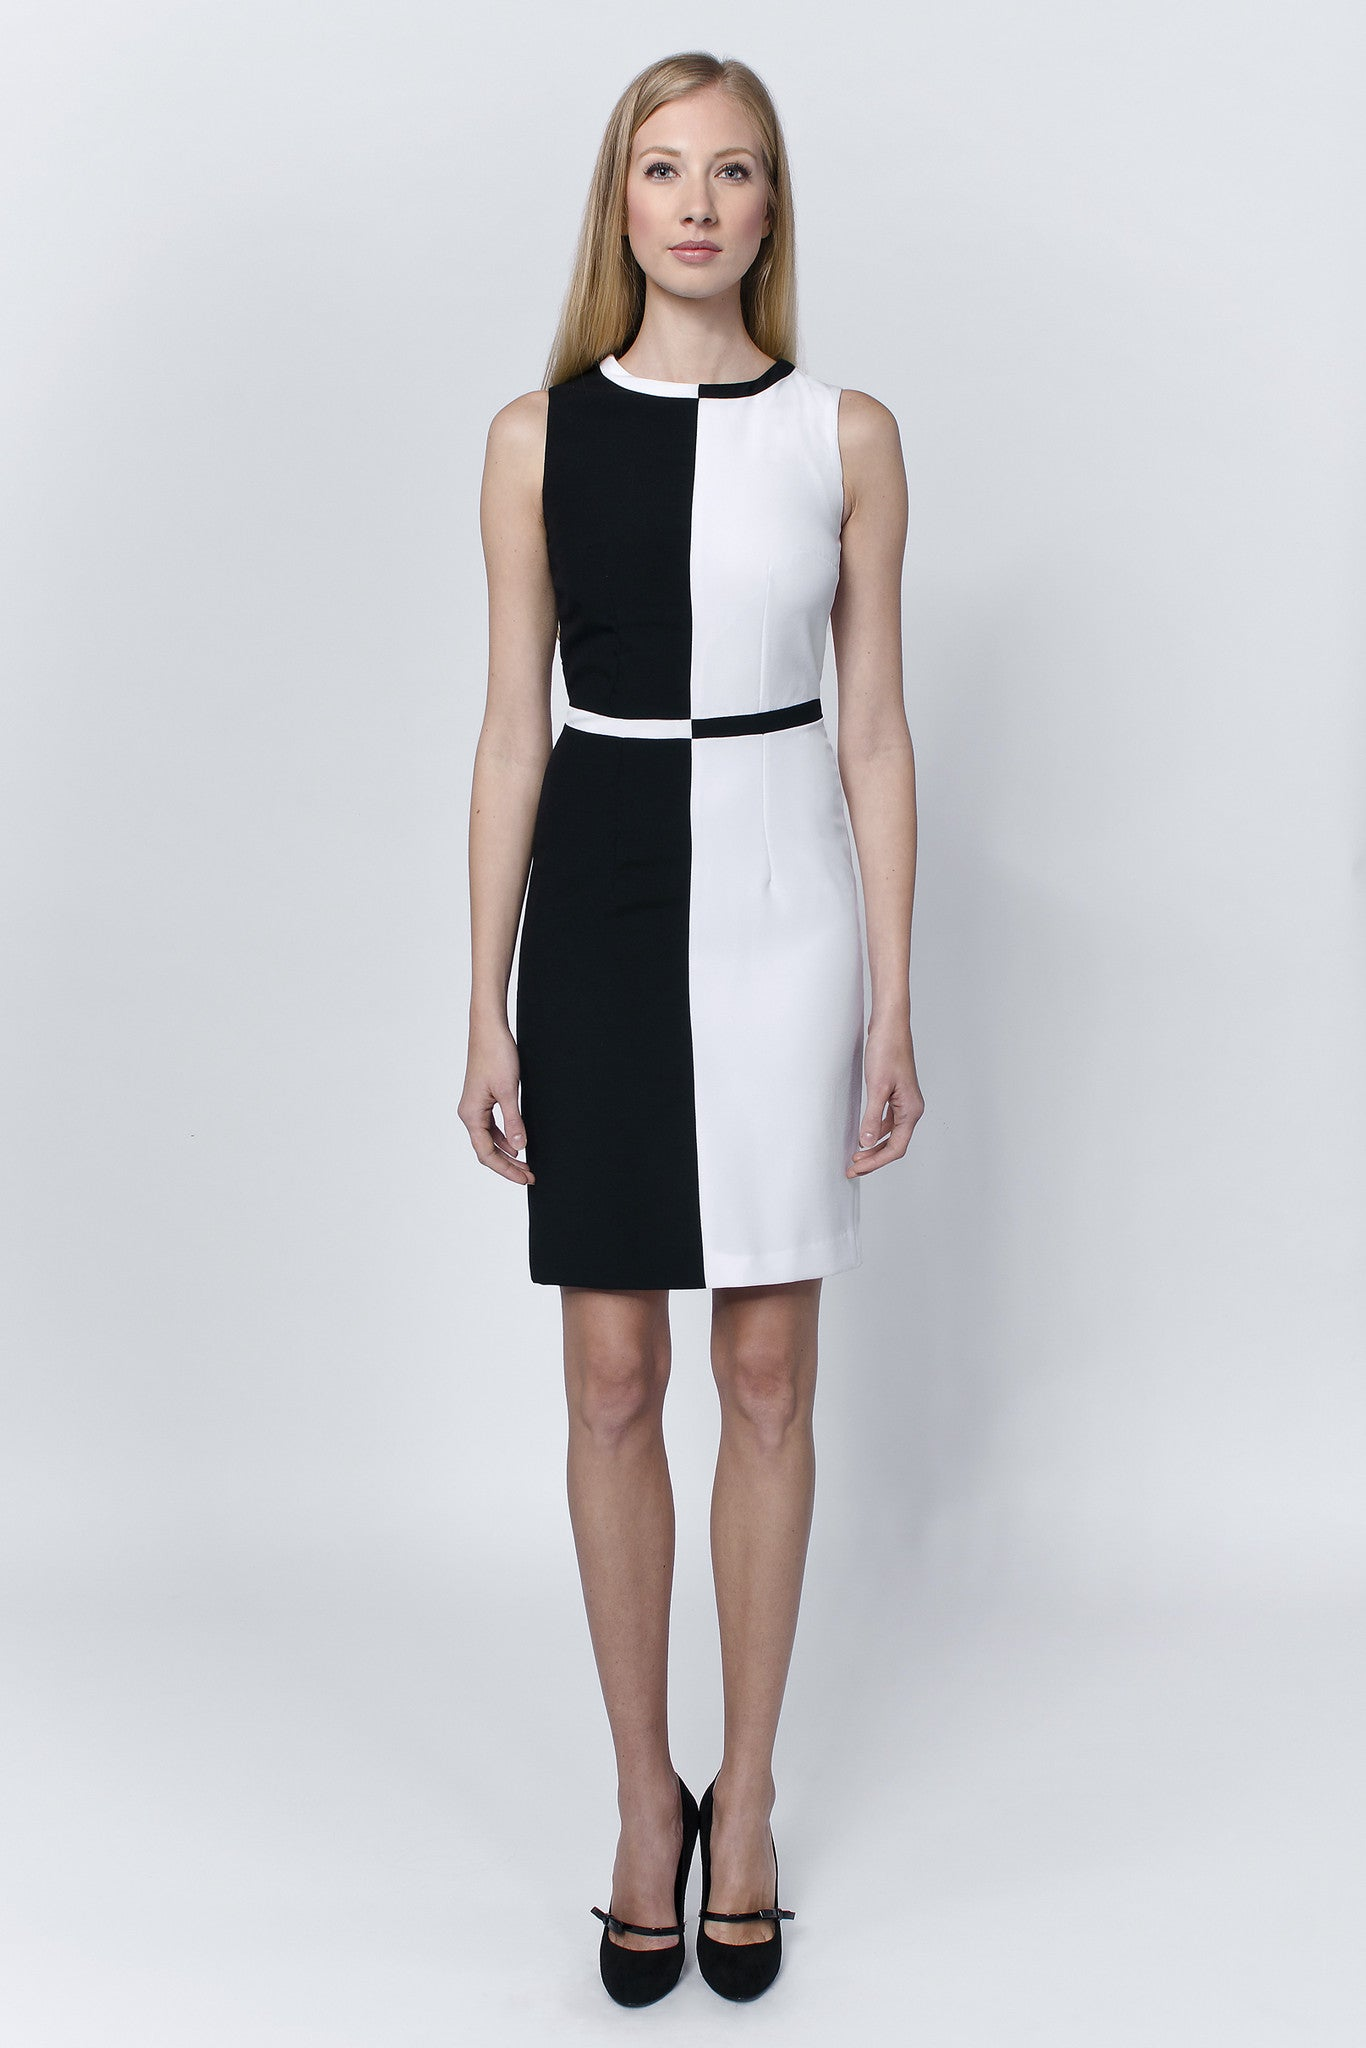 Black-white-dress-Laccafashion